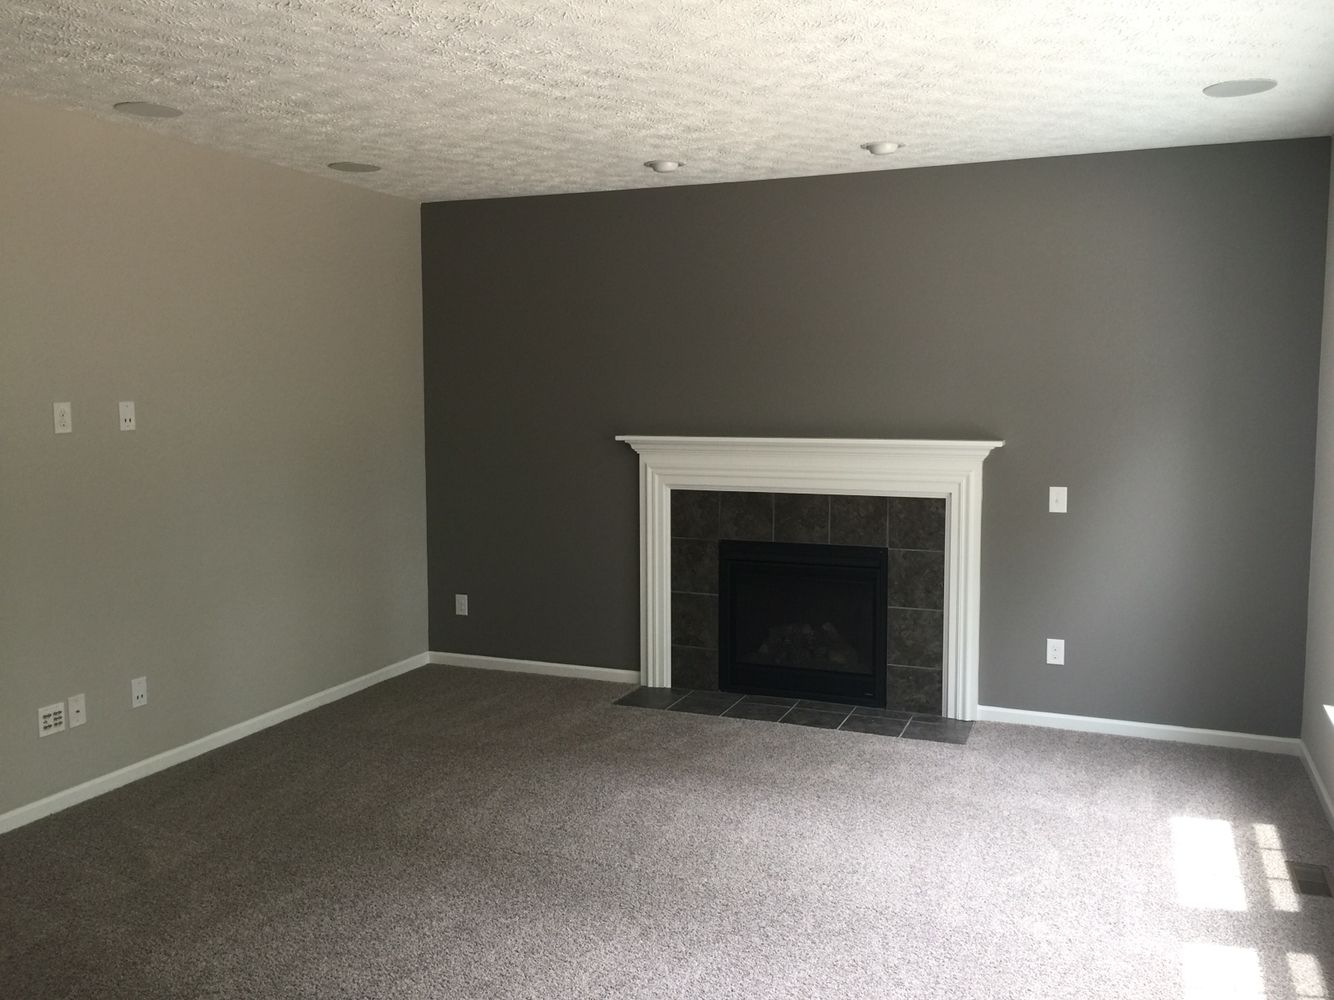 Our carpet is mohawk brand in rainswept gray the dark gray accent wall is done in sherwin williams dovetail the light gray walls are done in sherwin